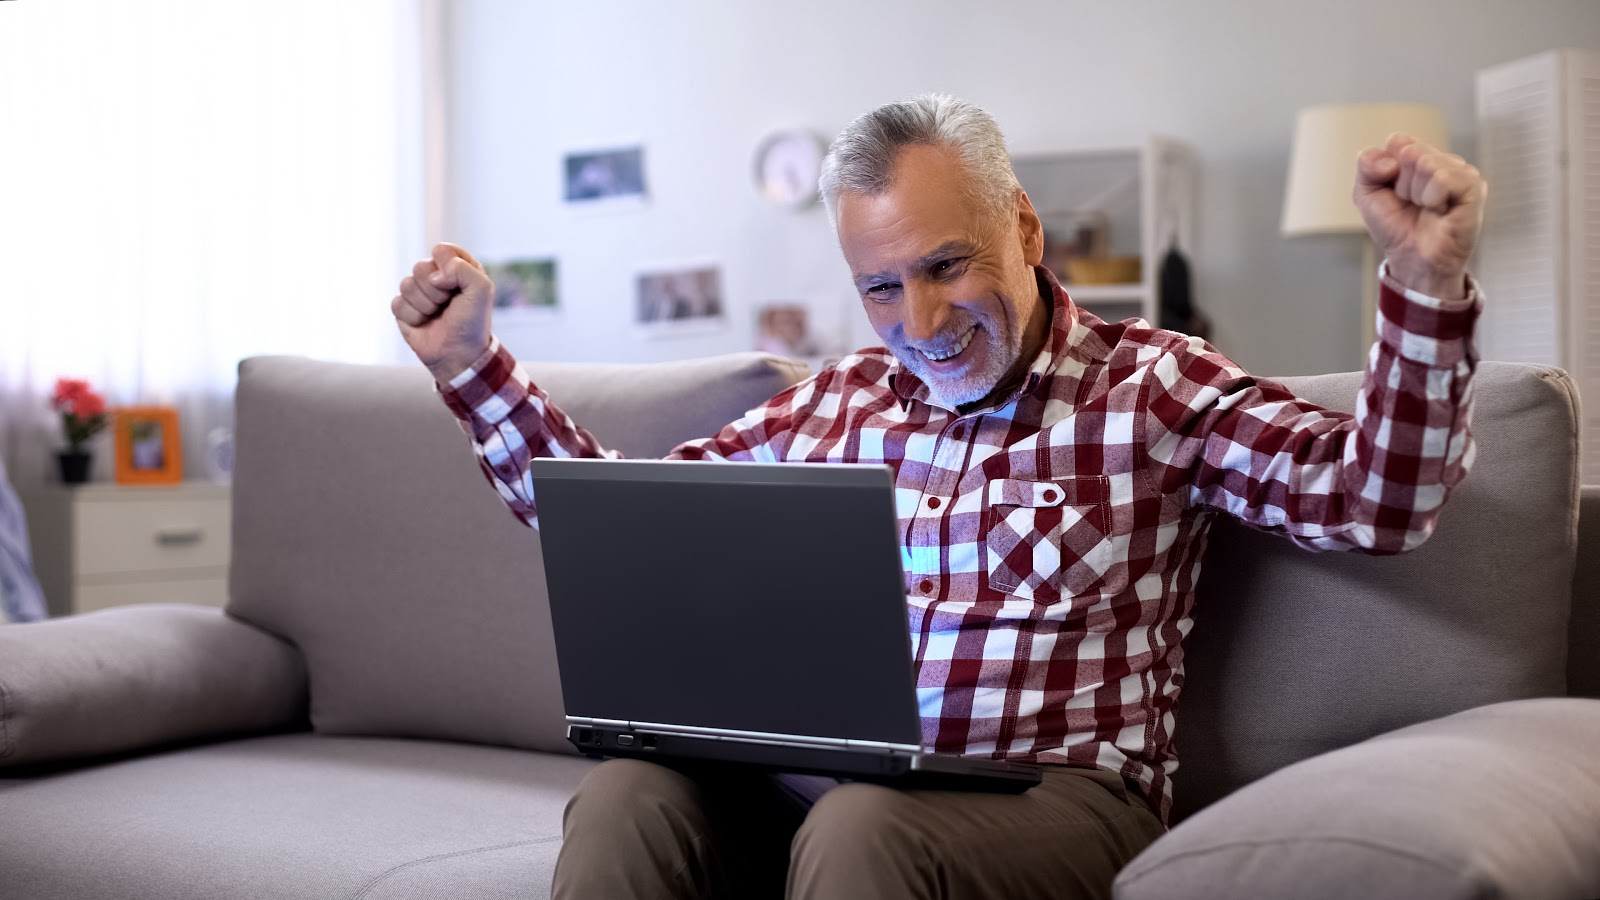 A man celebrates while looking at his laptop screen